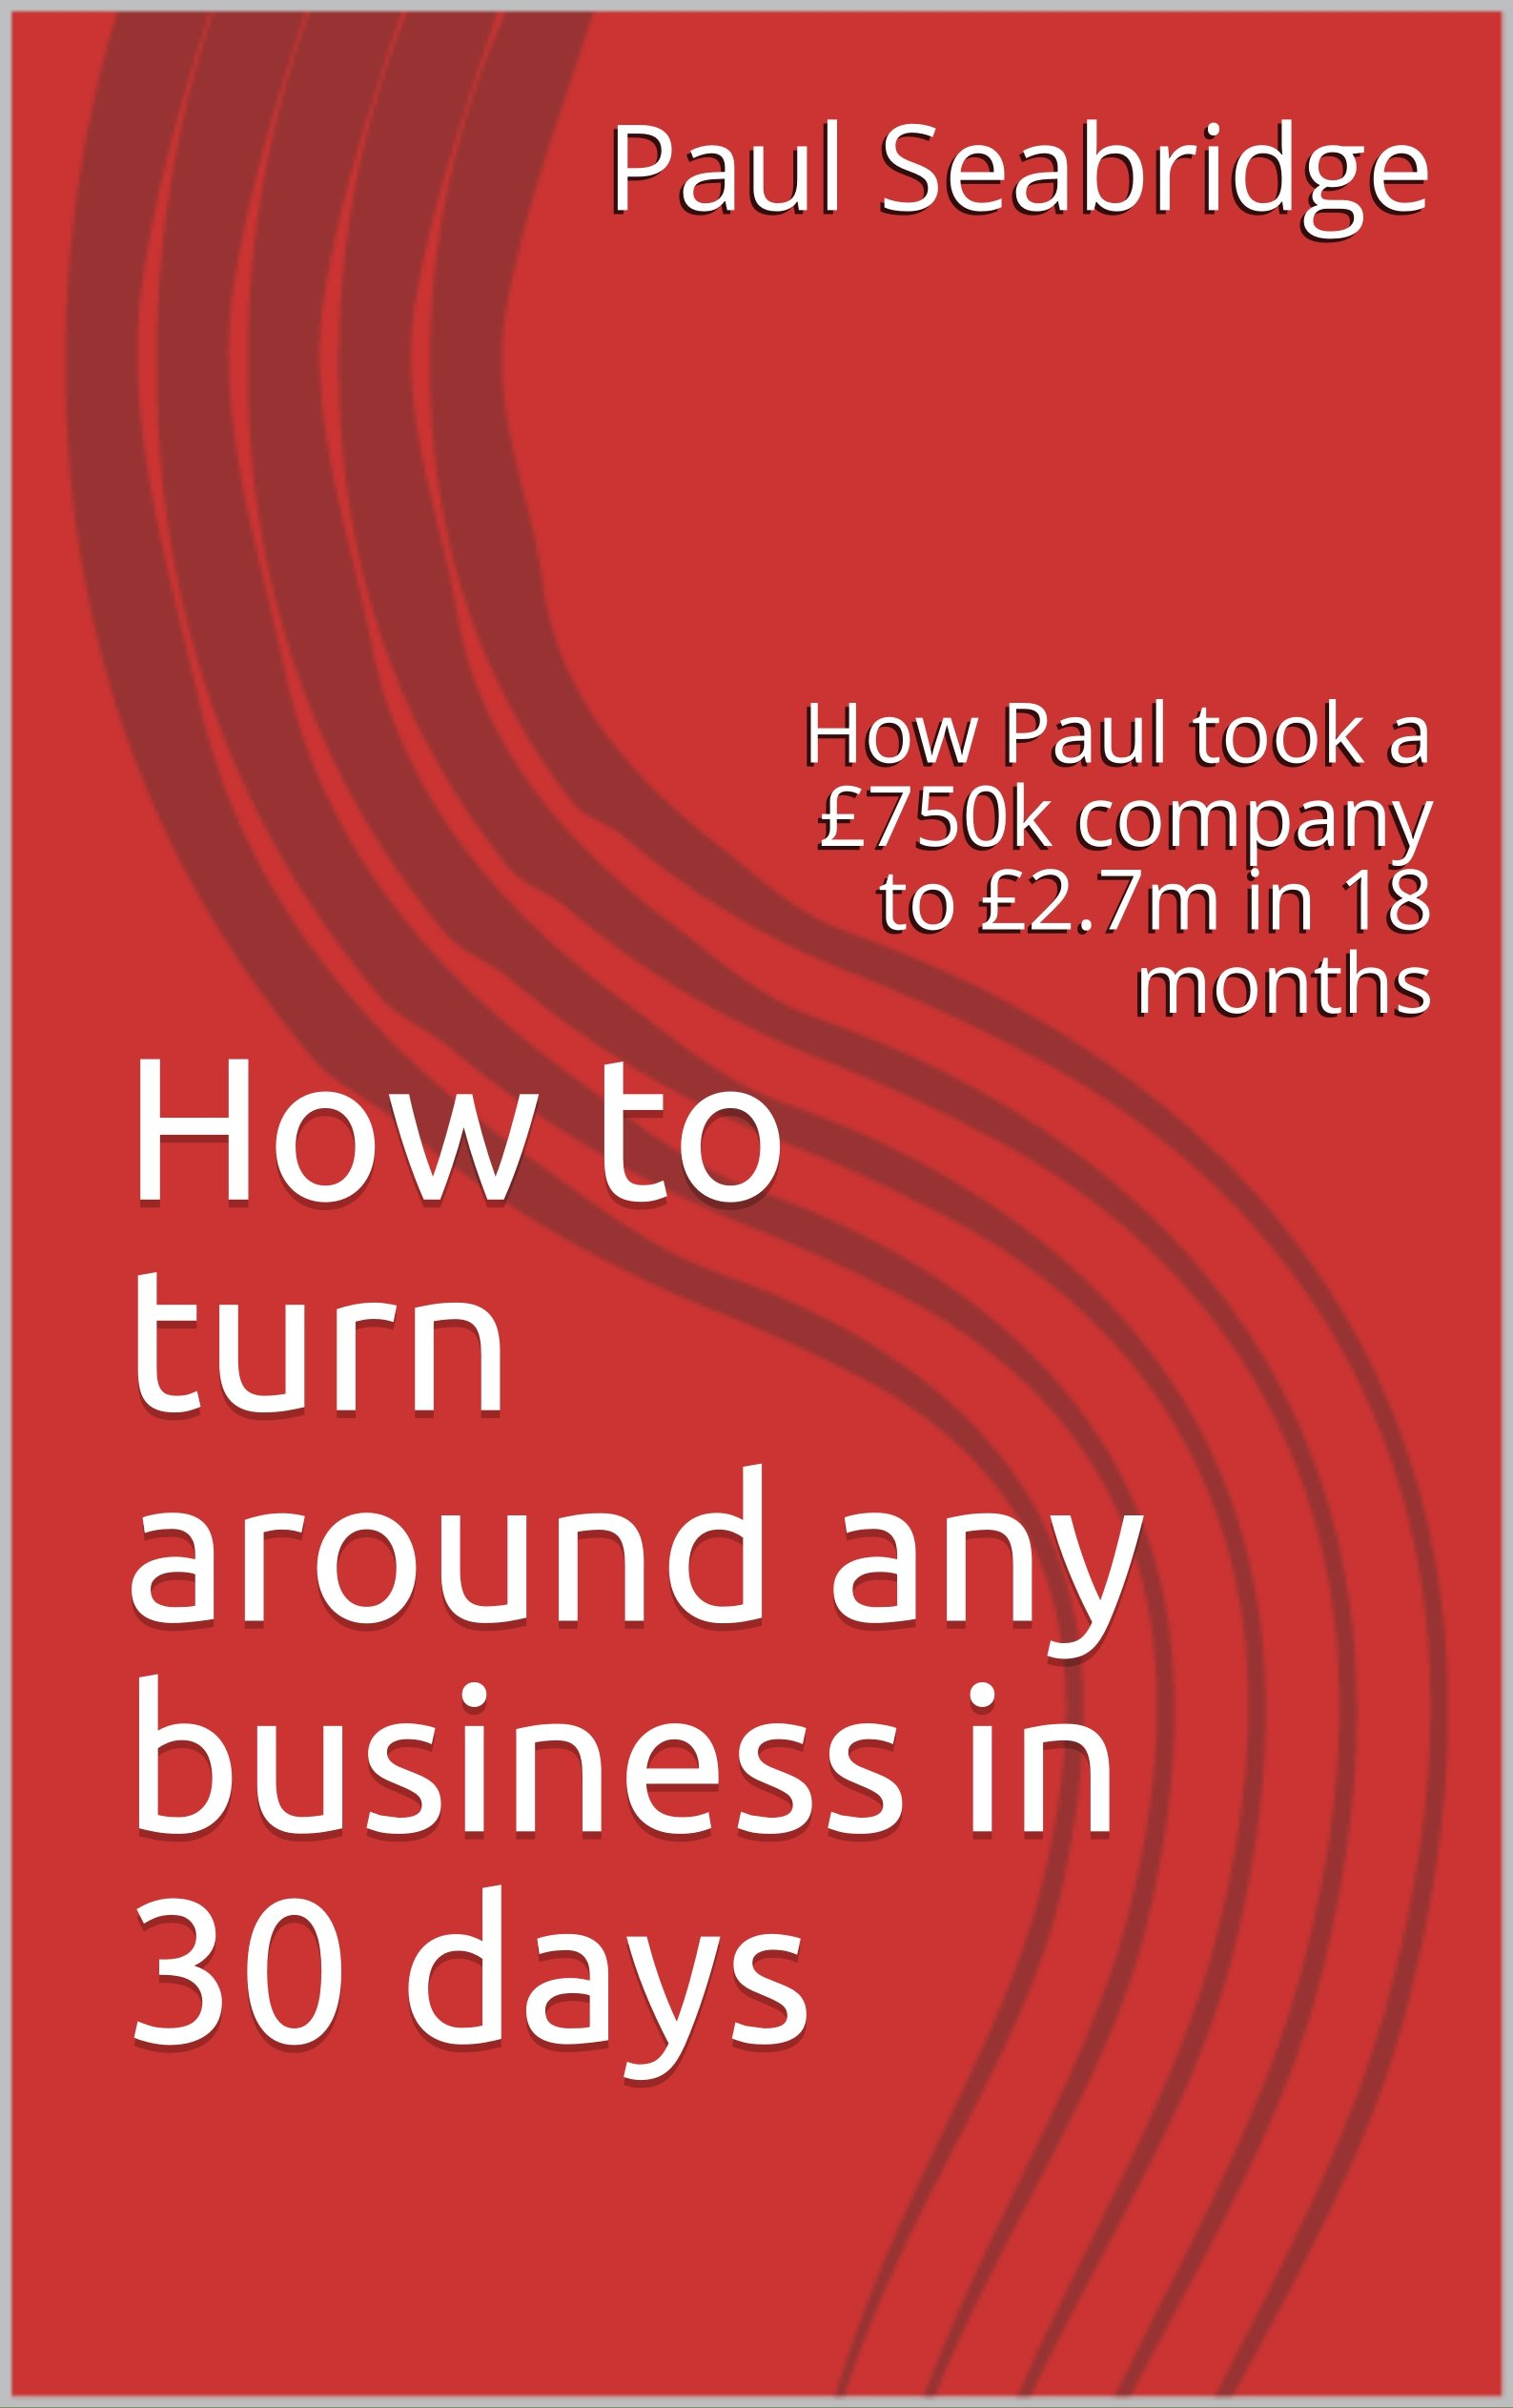 How to turn around any business in 30 days: How Paul took a £750k company to £2.7m in 18 months